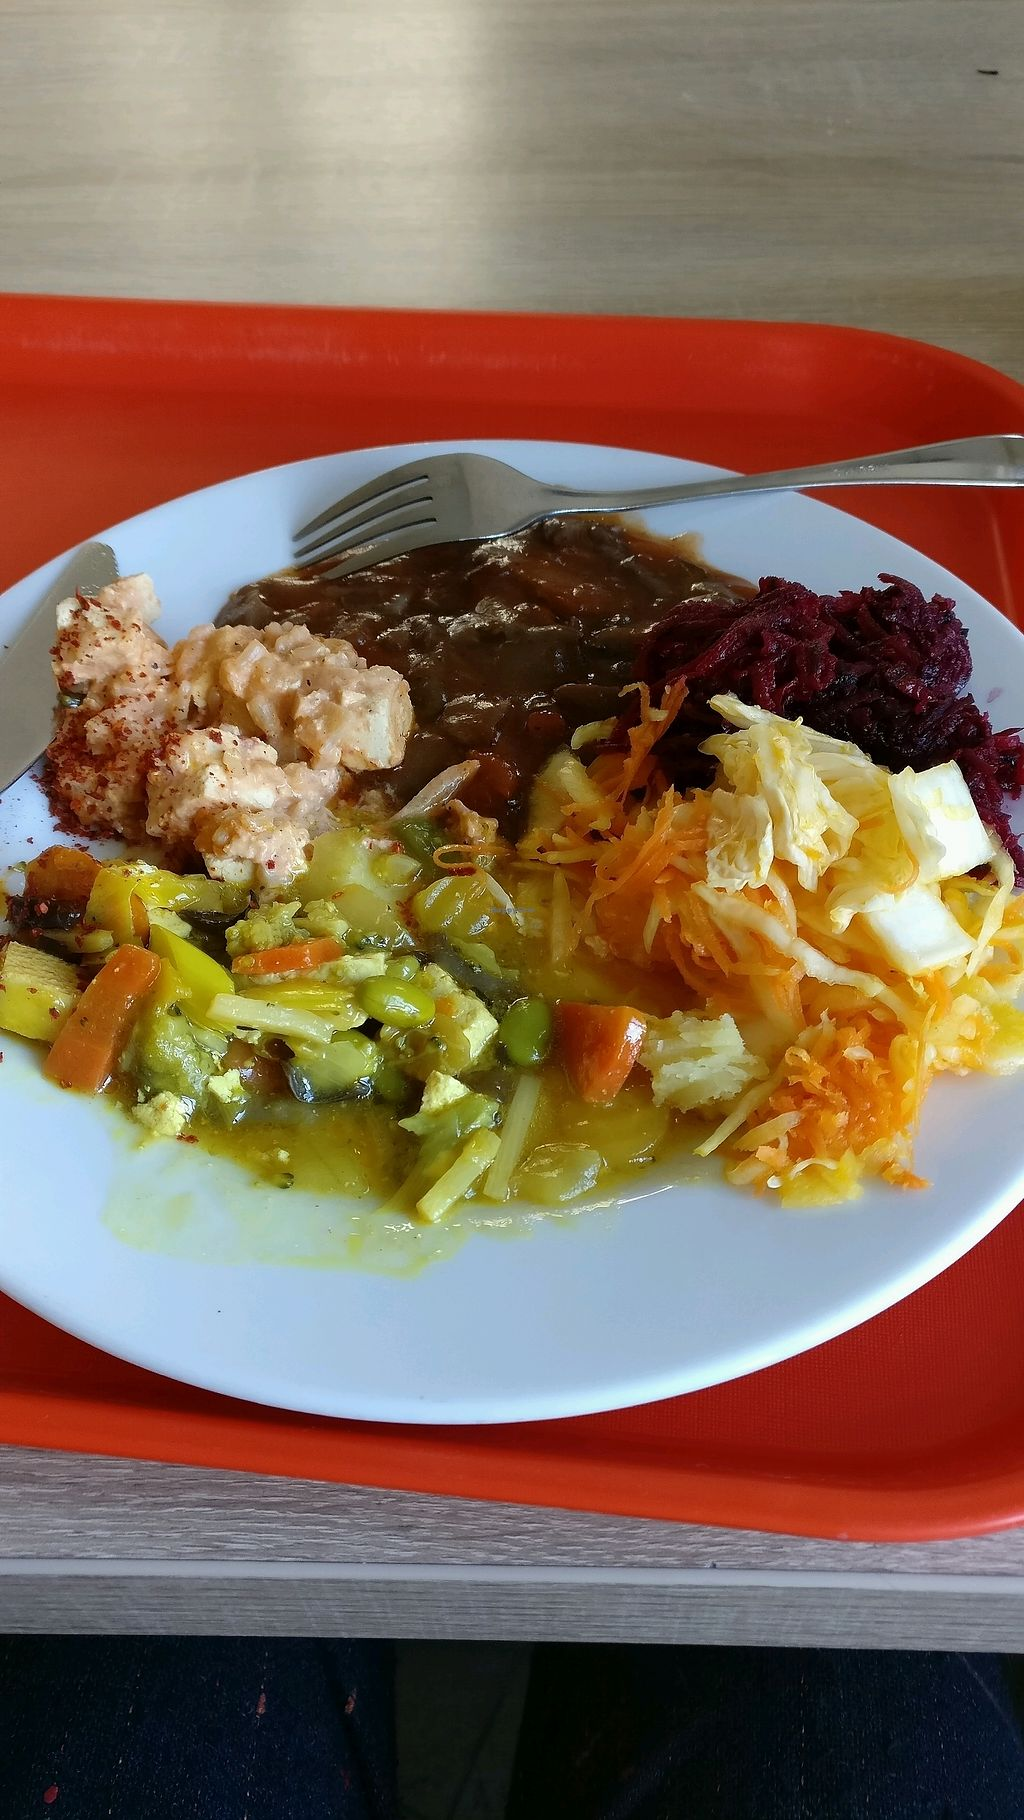 """Photo of Veg Life - Stare Mesto  by <a href=""""/members/profile/Pachamamma"""">Pachamamma</a> <br/>4.5 euros for this, all vegan <br/> March 22, 2018  - <a href='/contact/abuse/image/38007/374386'>Report</a>"""